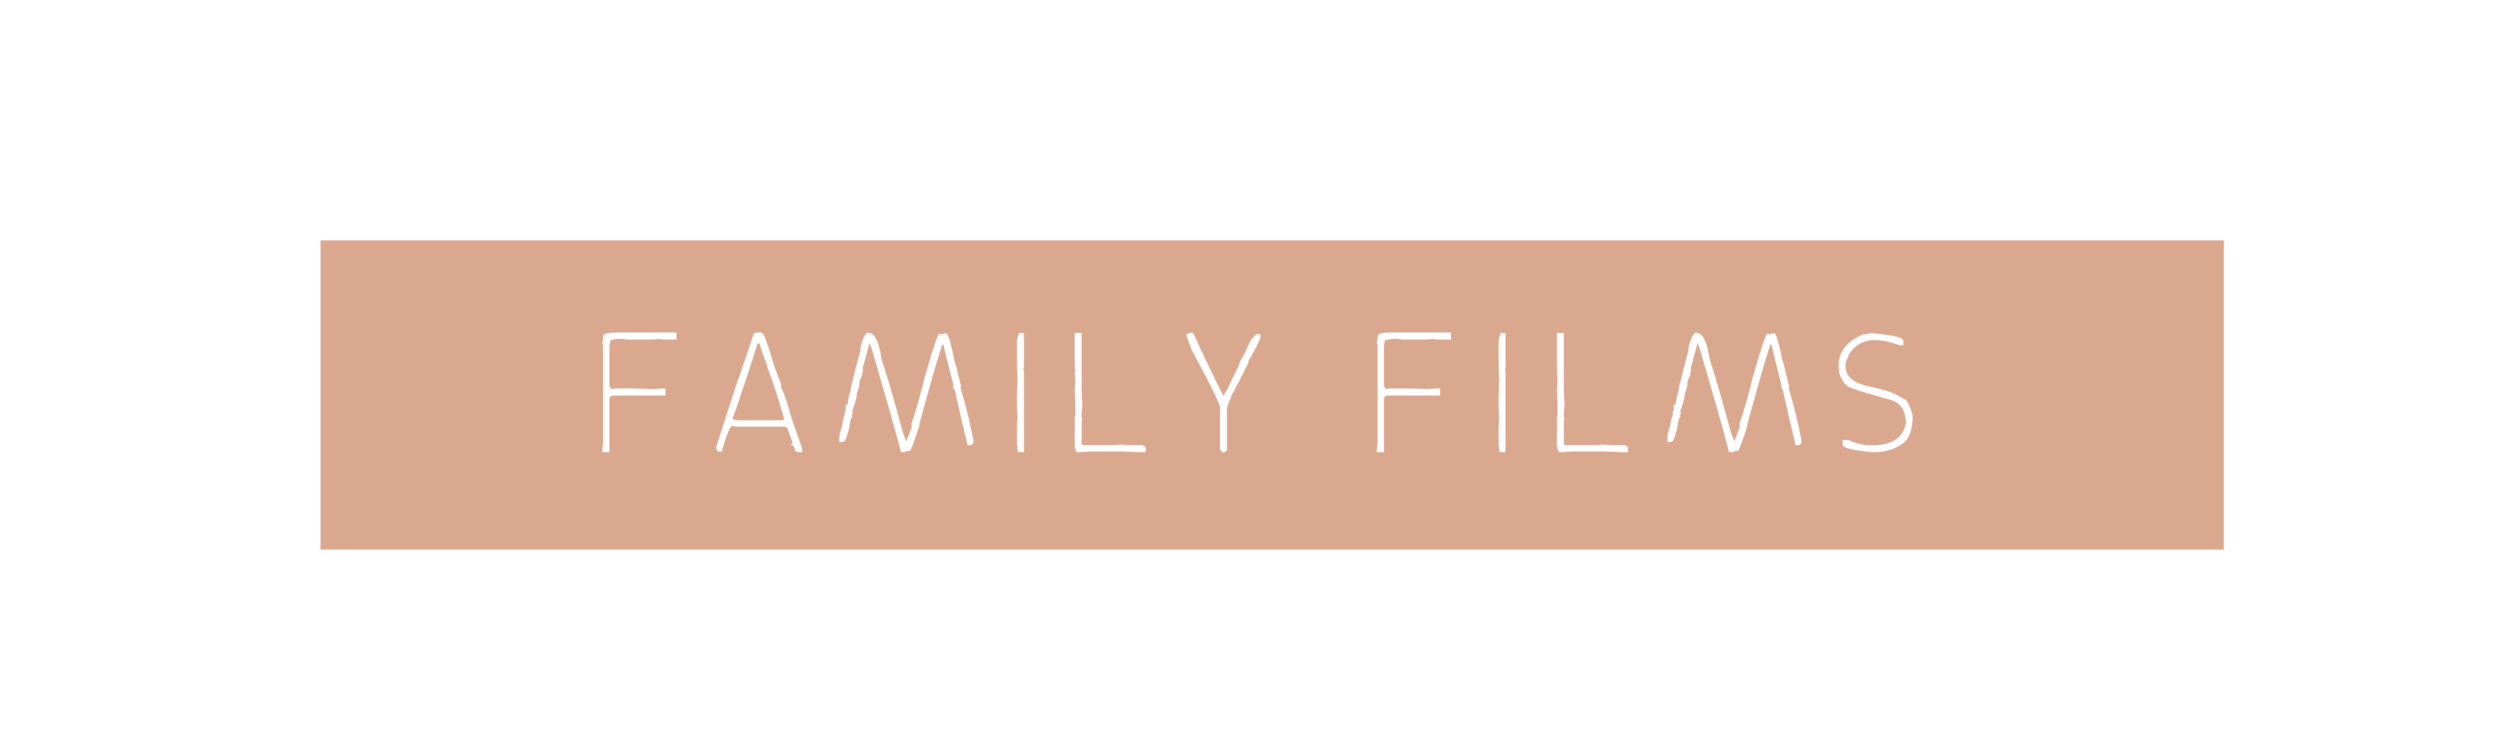 Family Films-01.png